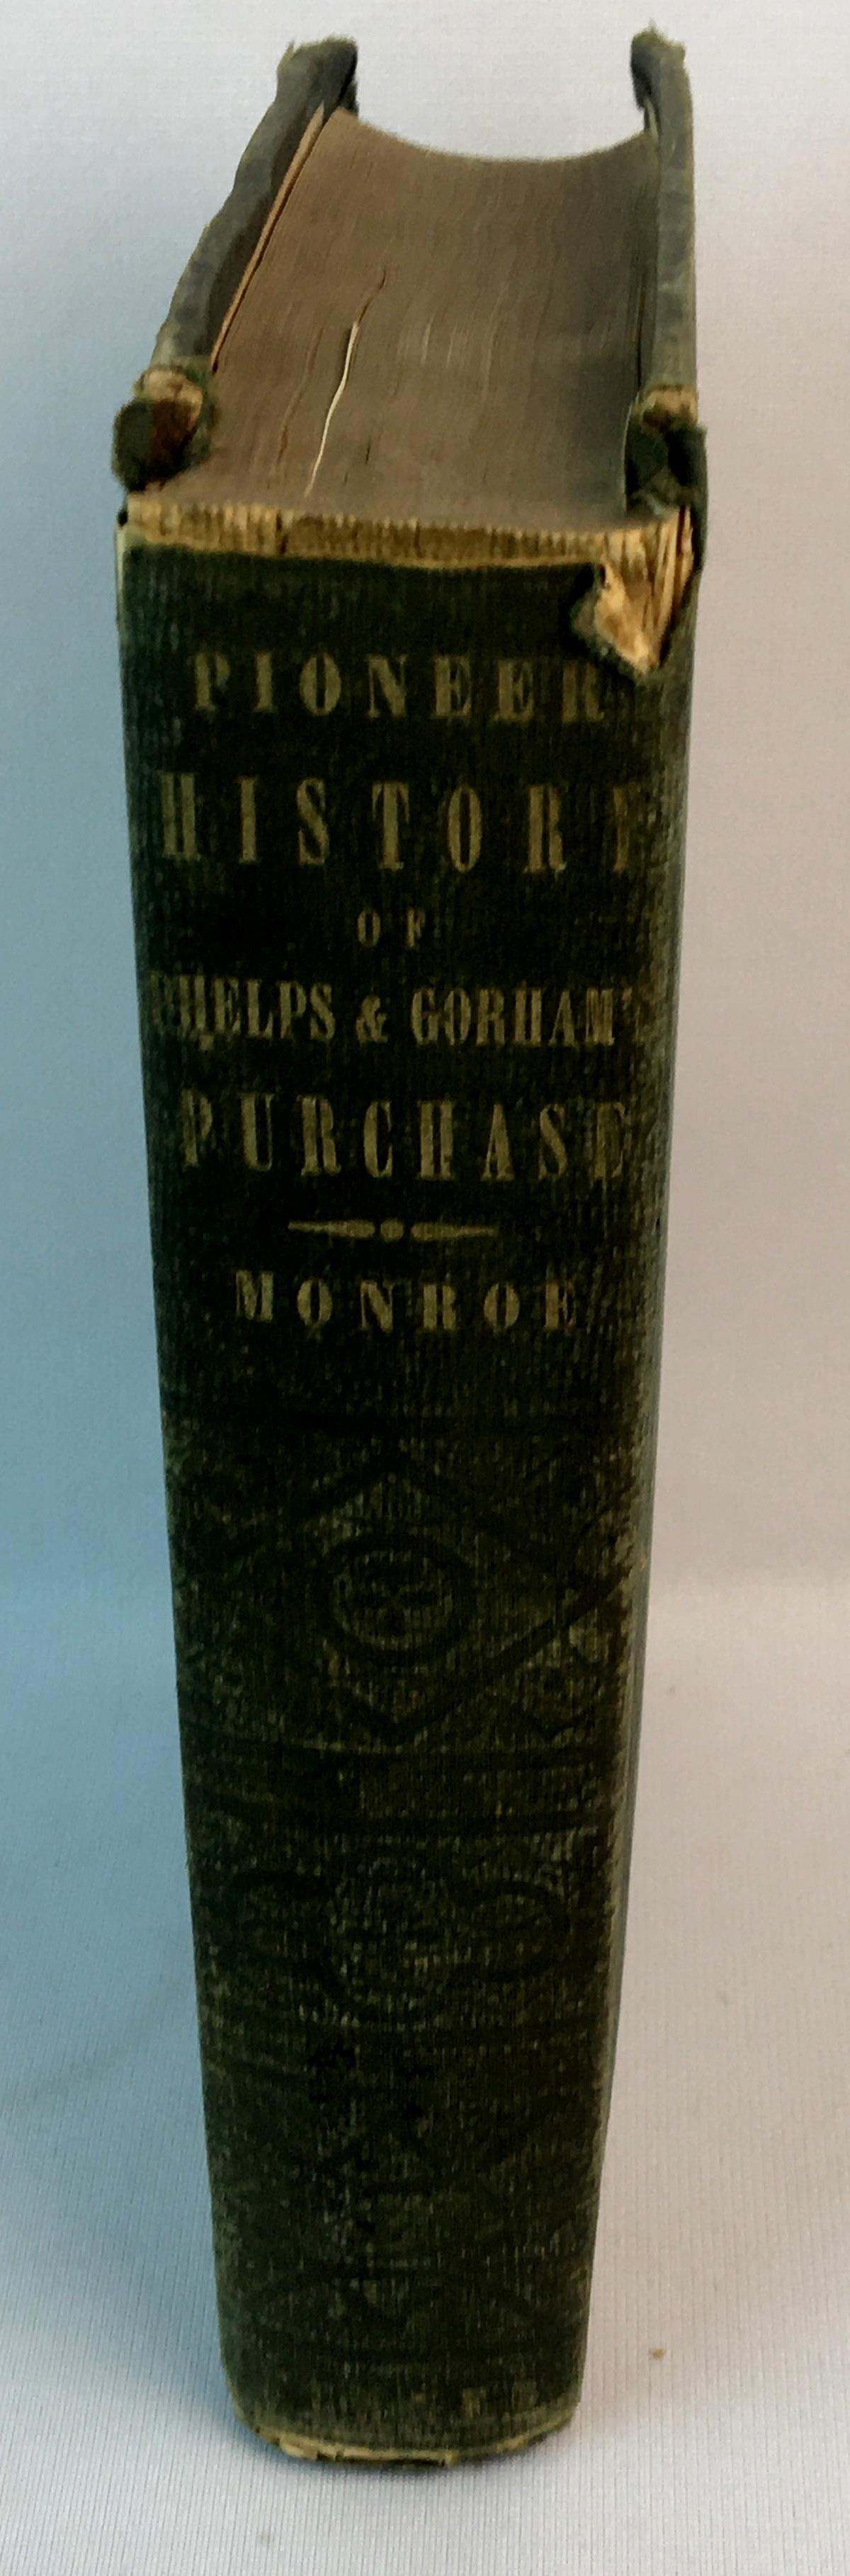 1851 History of the Pioneer Settlement of Phelps and Gorham's Purchase by O. Turner FIRST EDITION